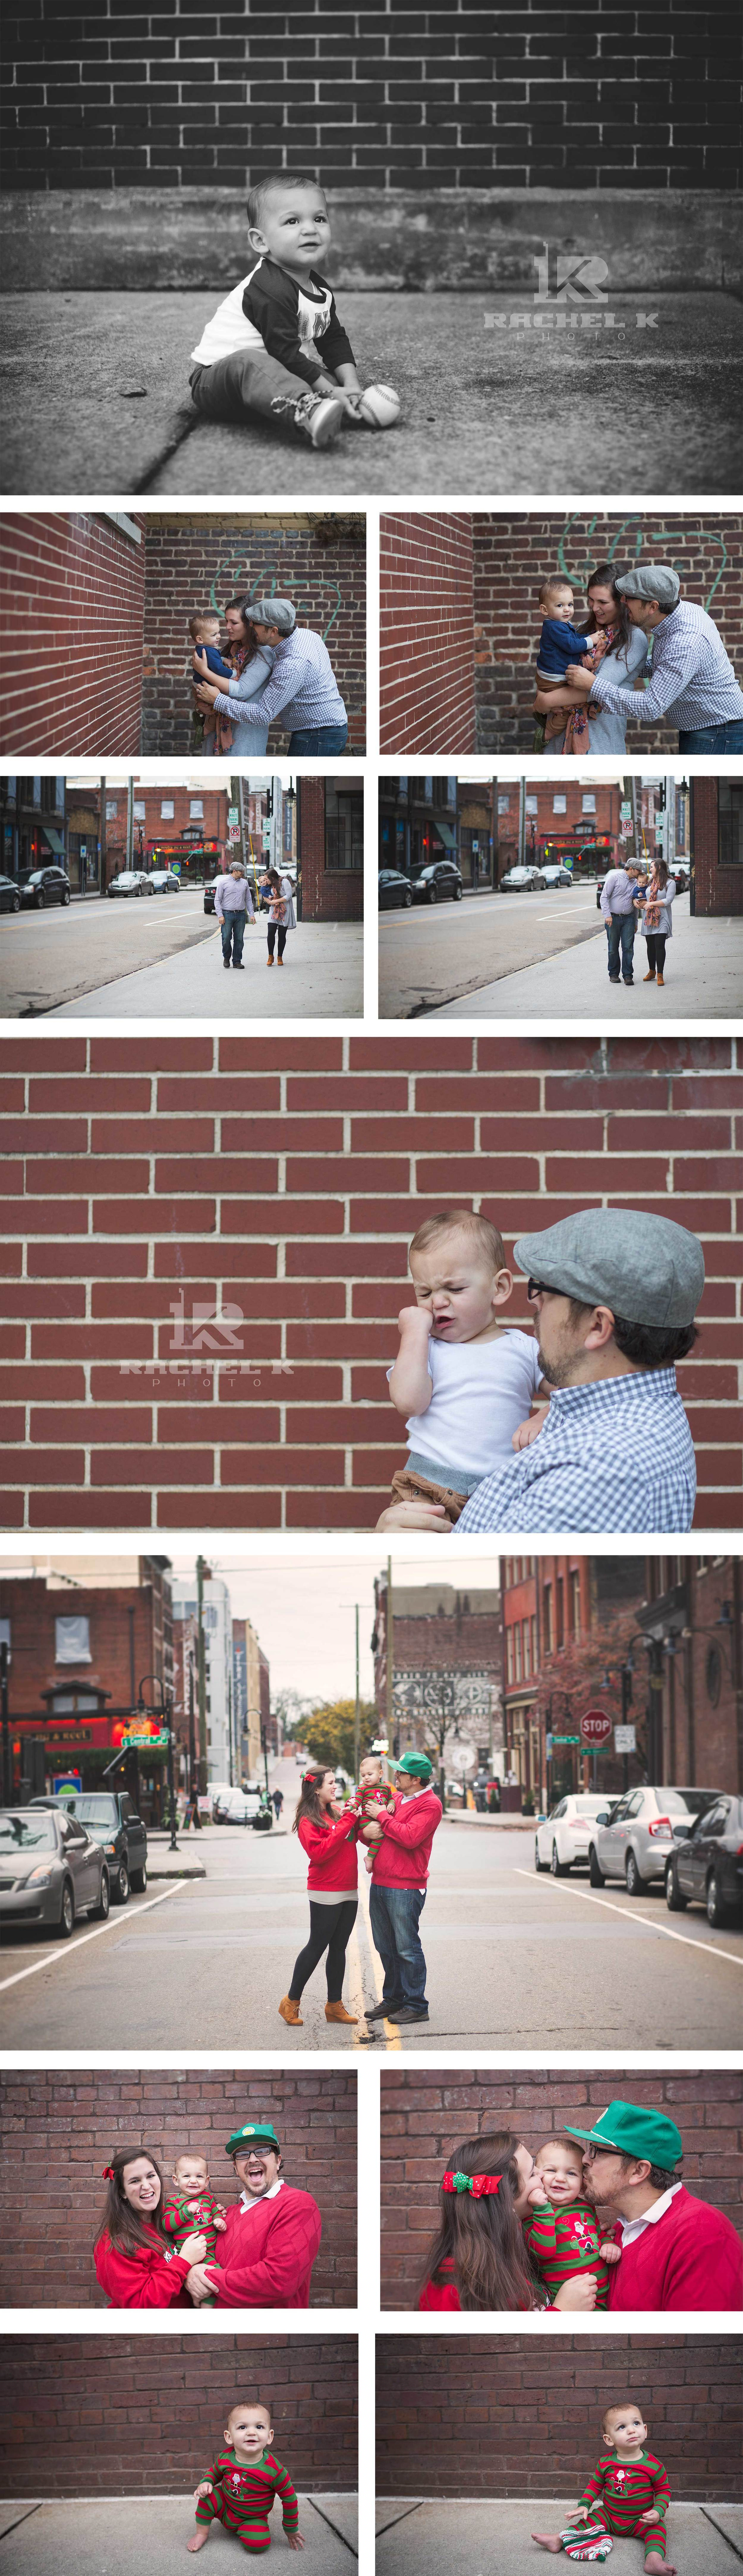 Knoxville TN downtown photo session